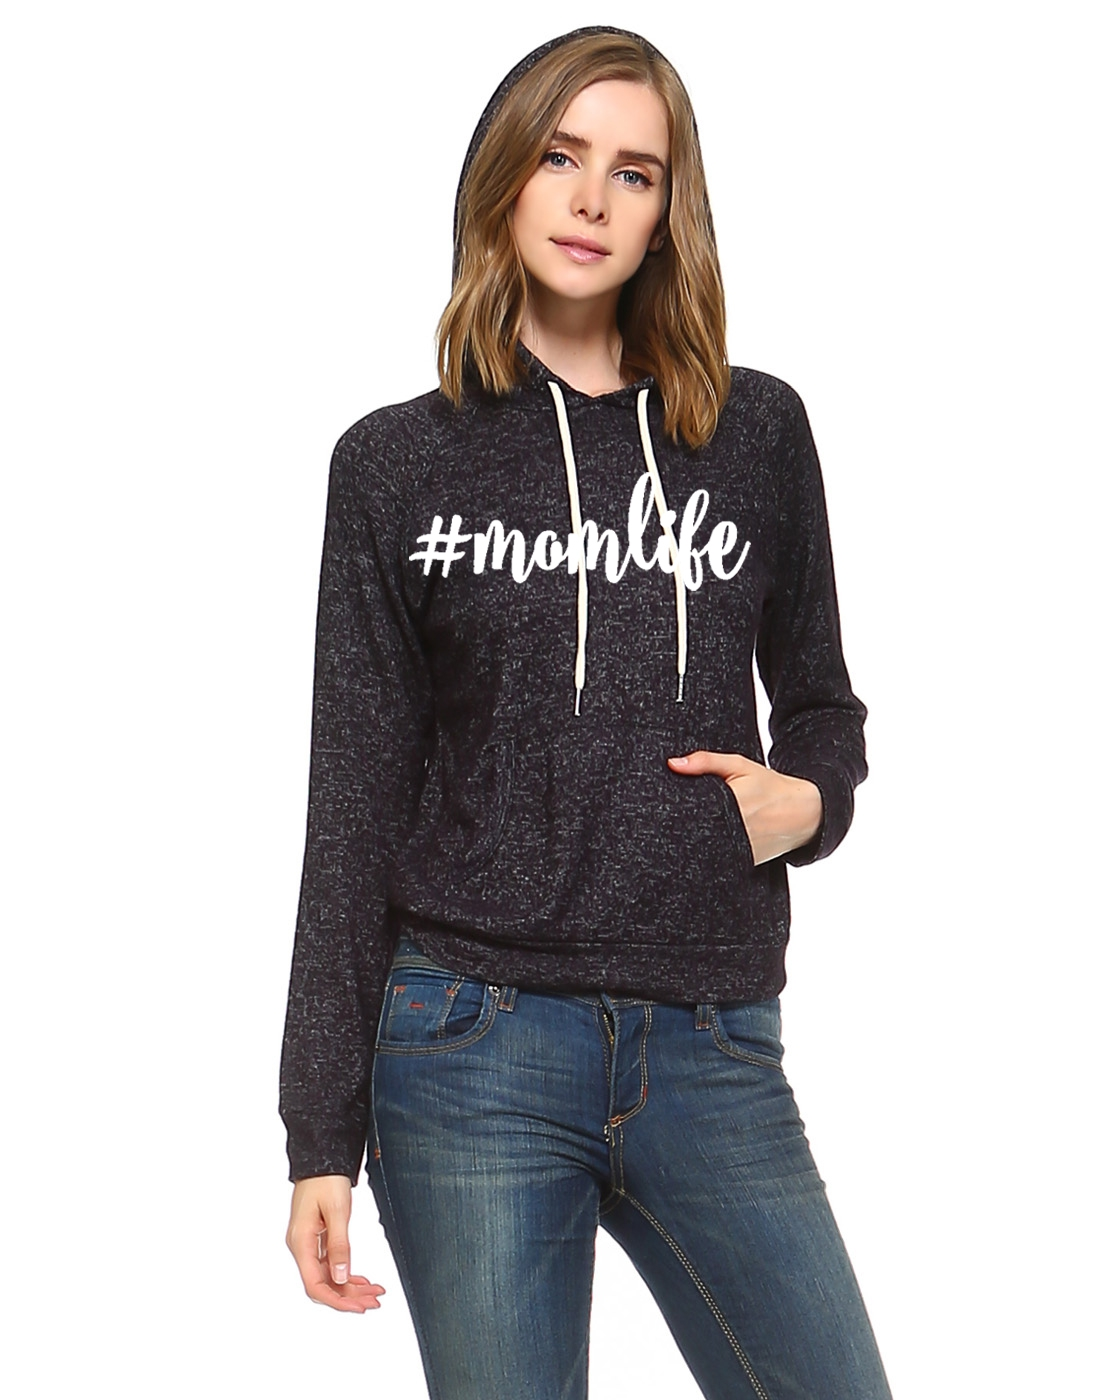 Momlife 2 urban funky graphic Hoodie - orangeshine.com